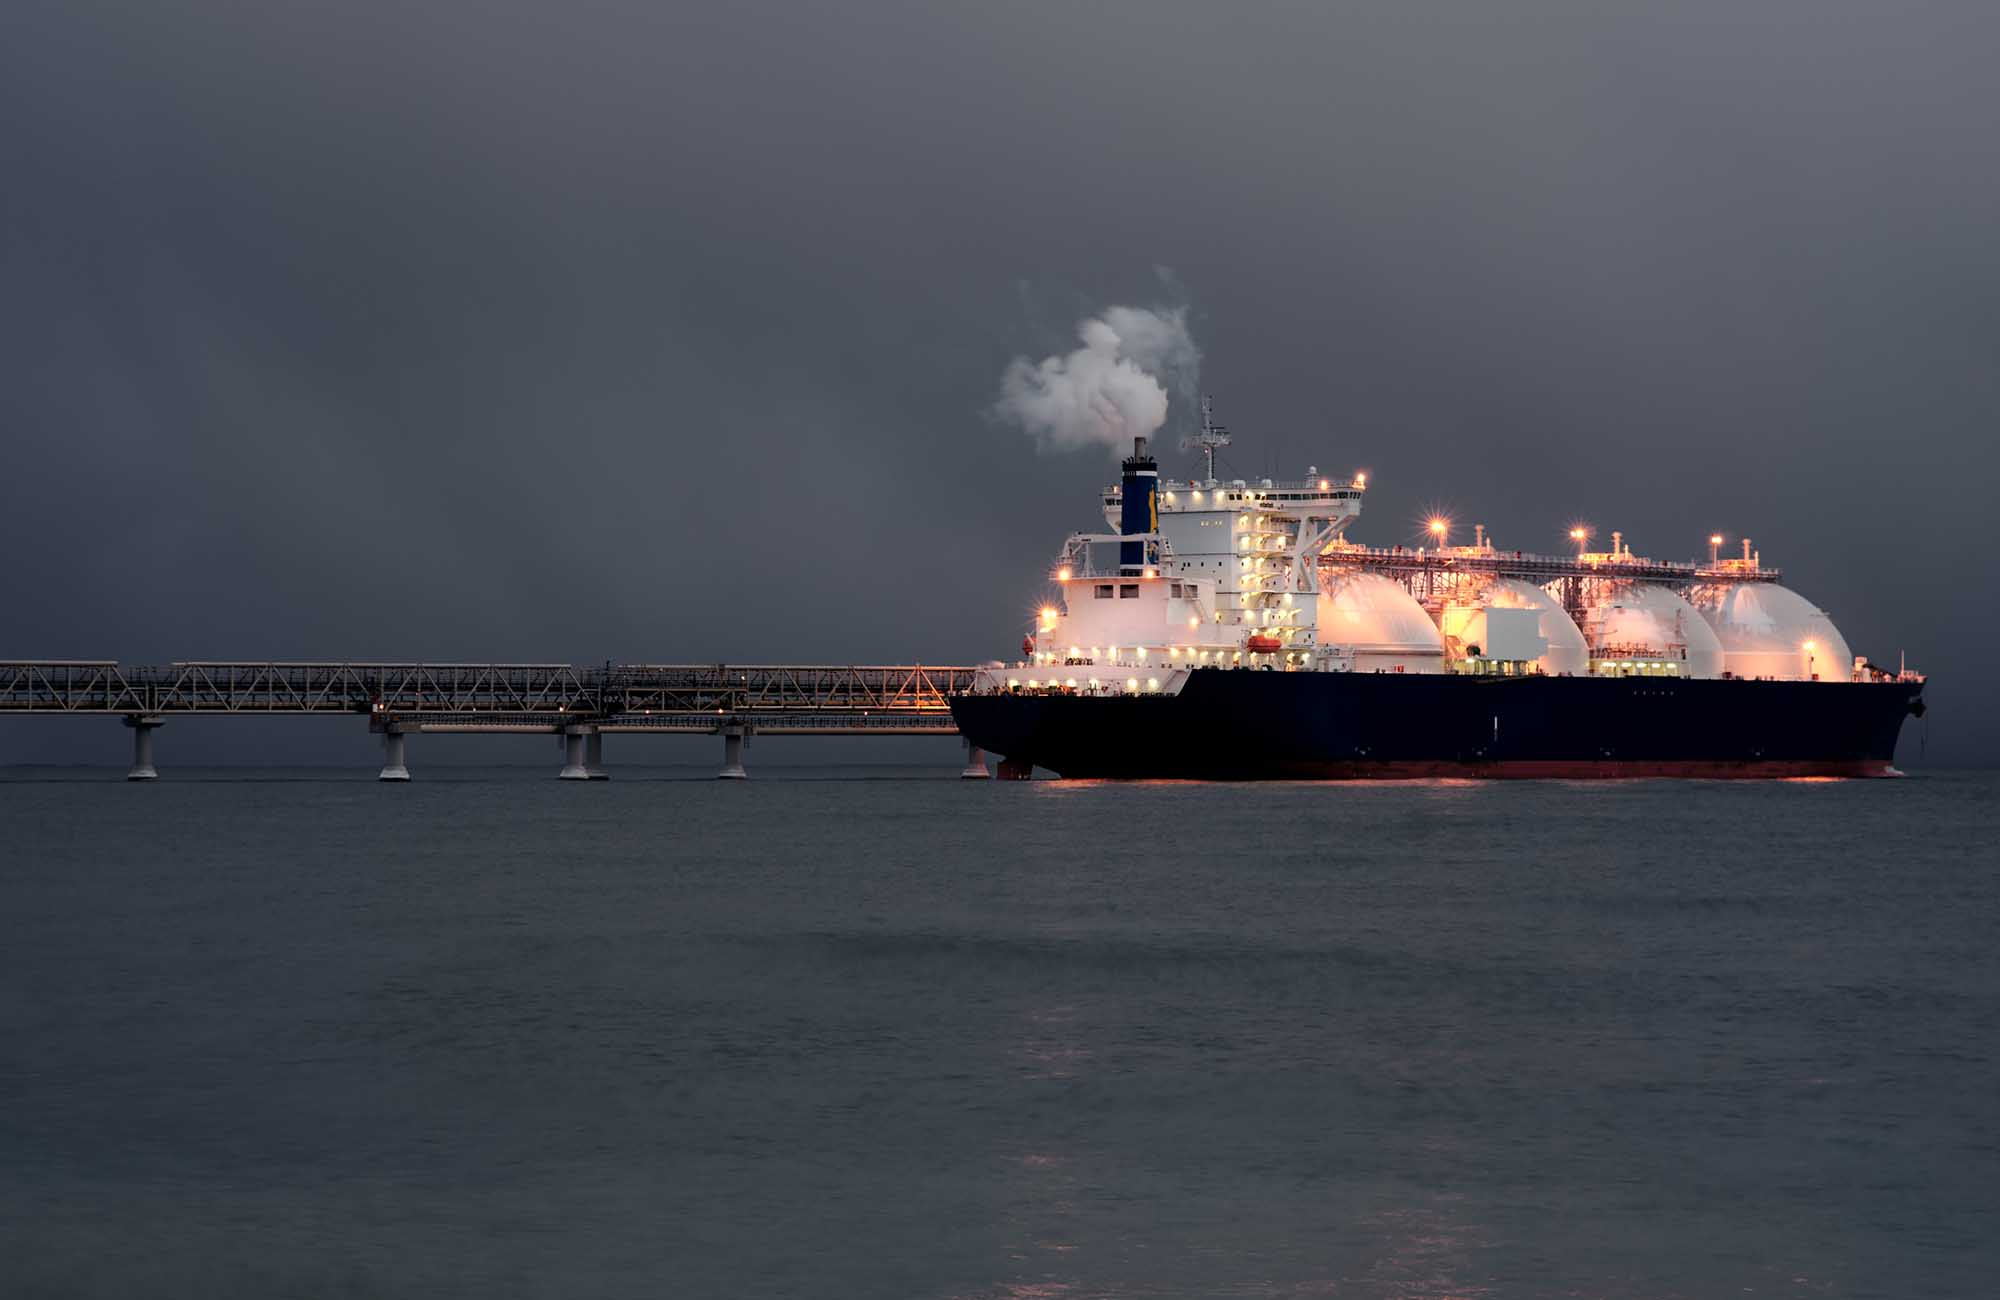 Charterers and Traders Risks